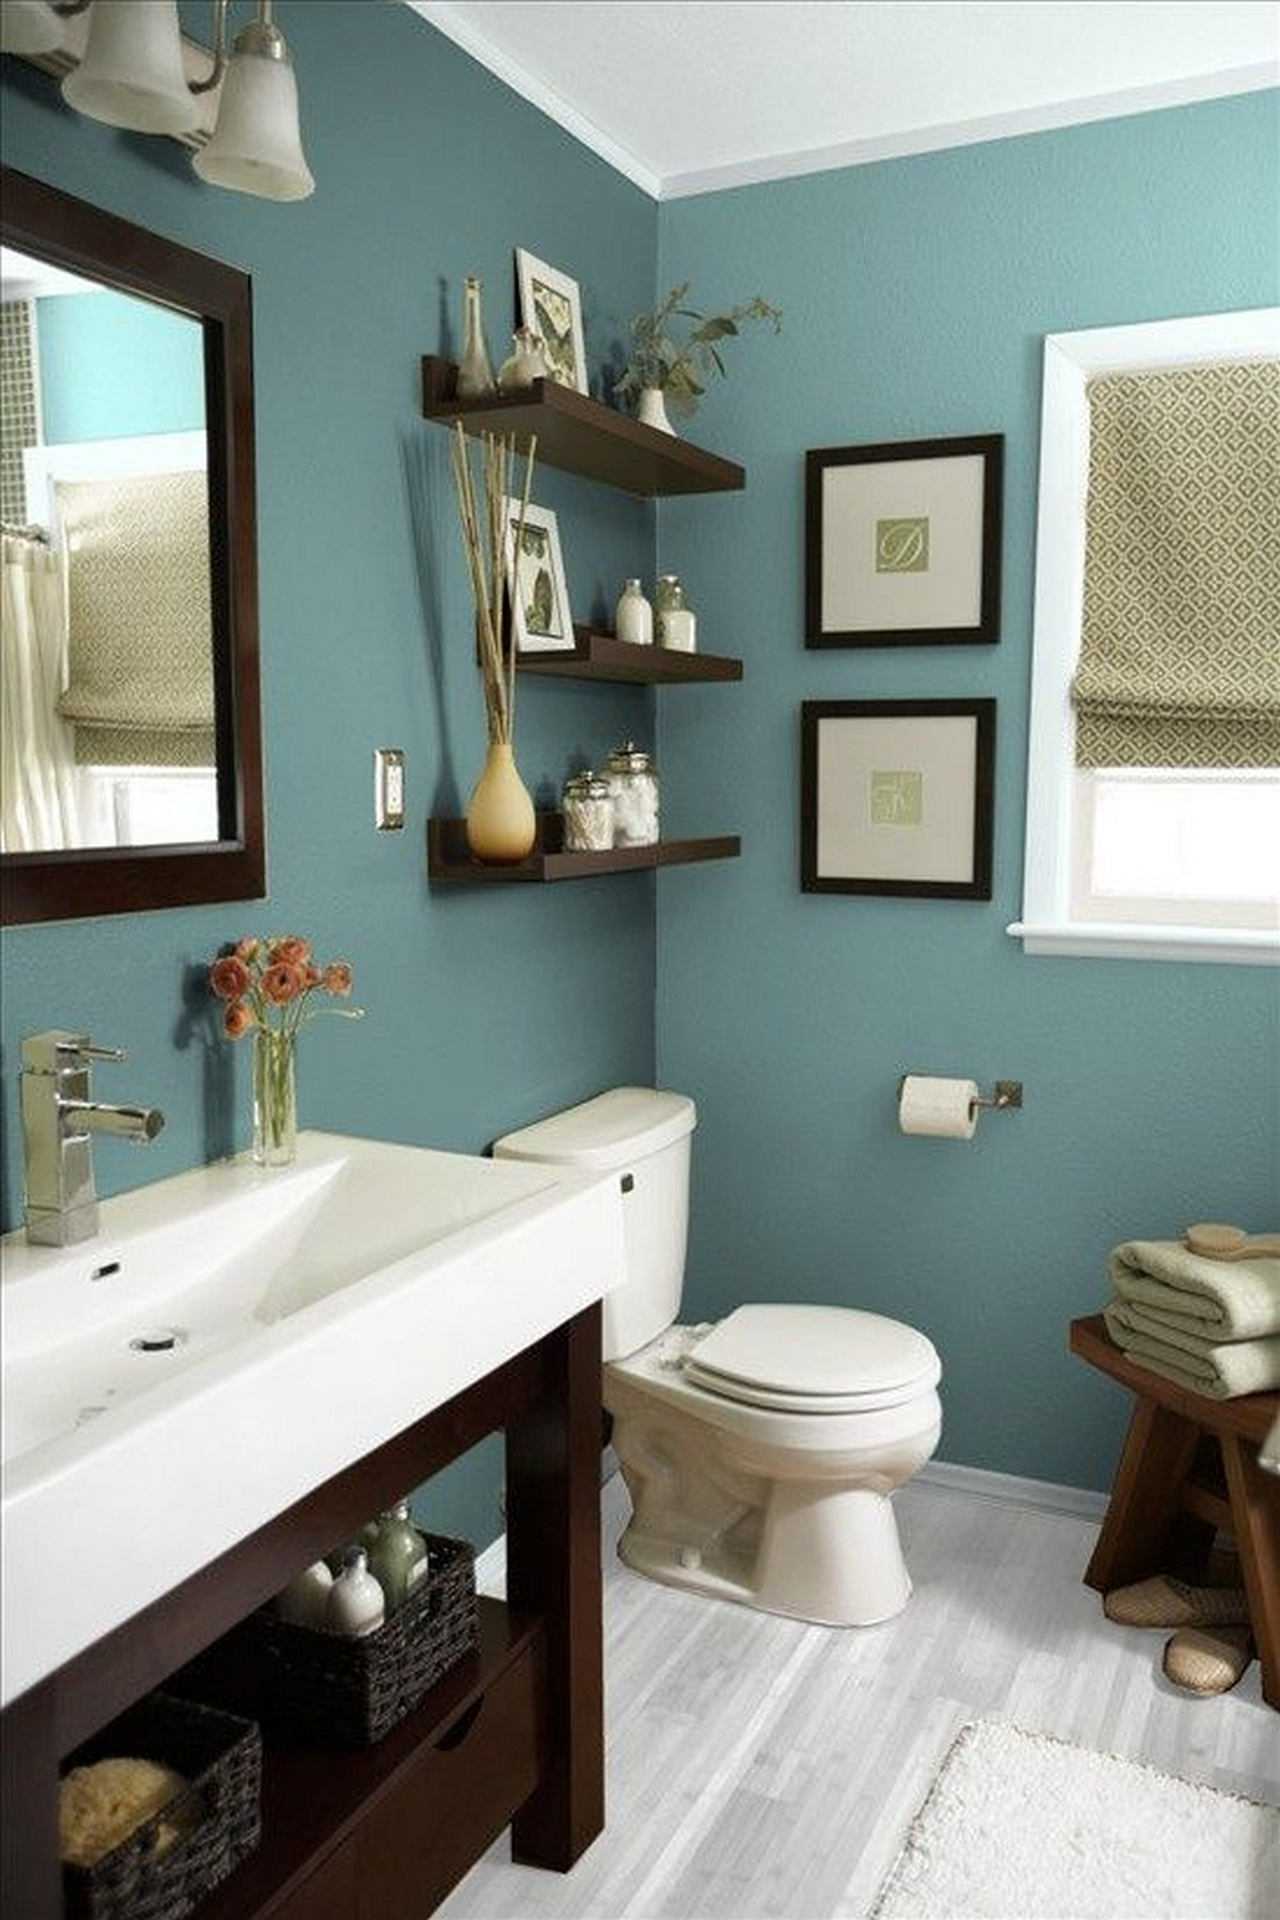 50+ Best Bathroom Decor Ideas and Designs that are Trendy ... on Restroom Ideas  id=25525